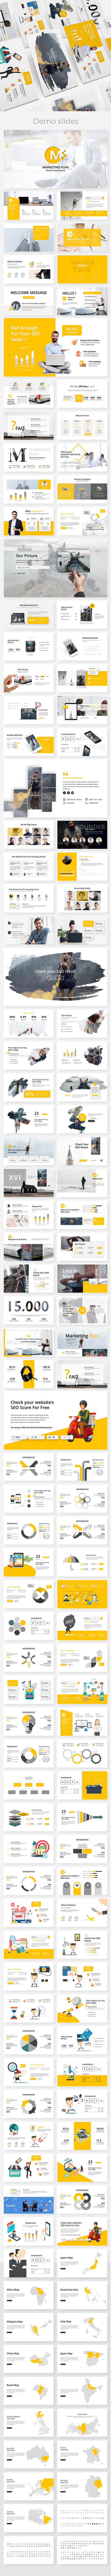 Marketing Plan Keynote Template - Business Keynote Templates